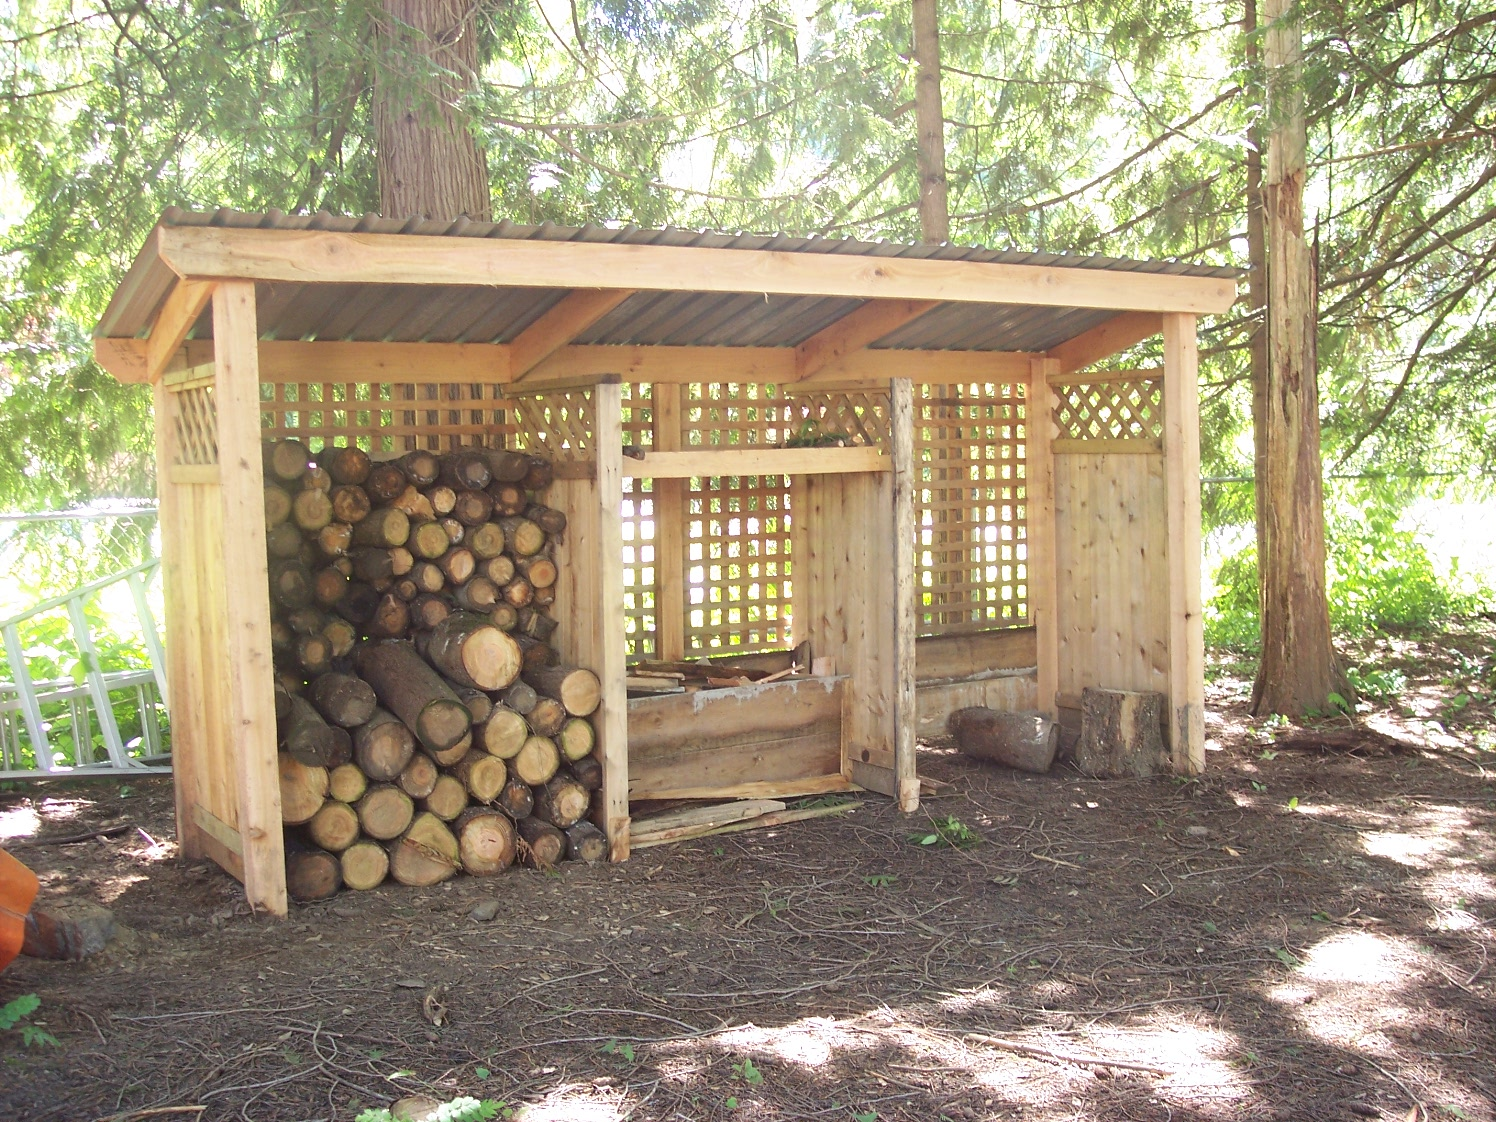 How to build a wood shed frame